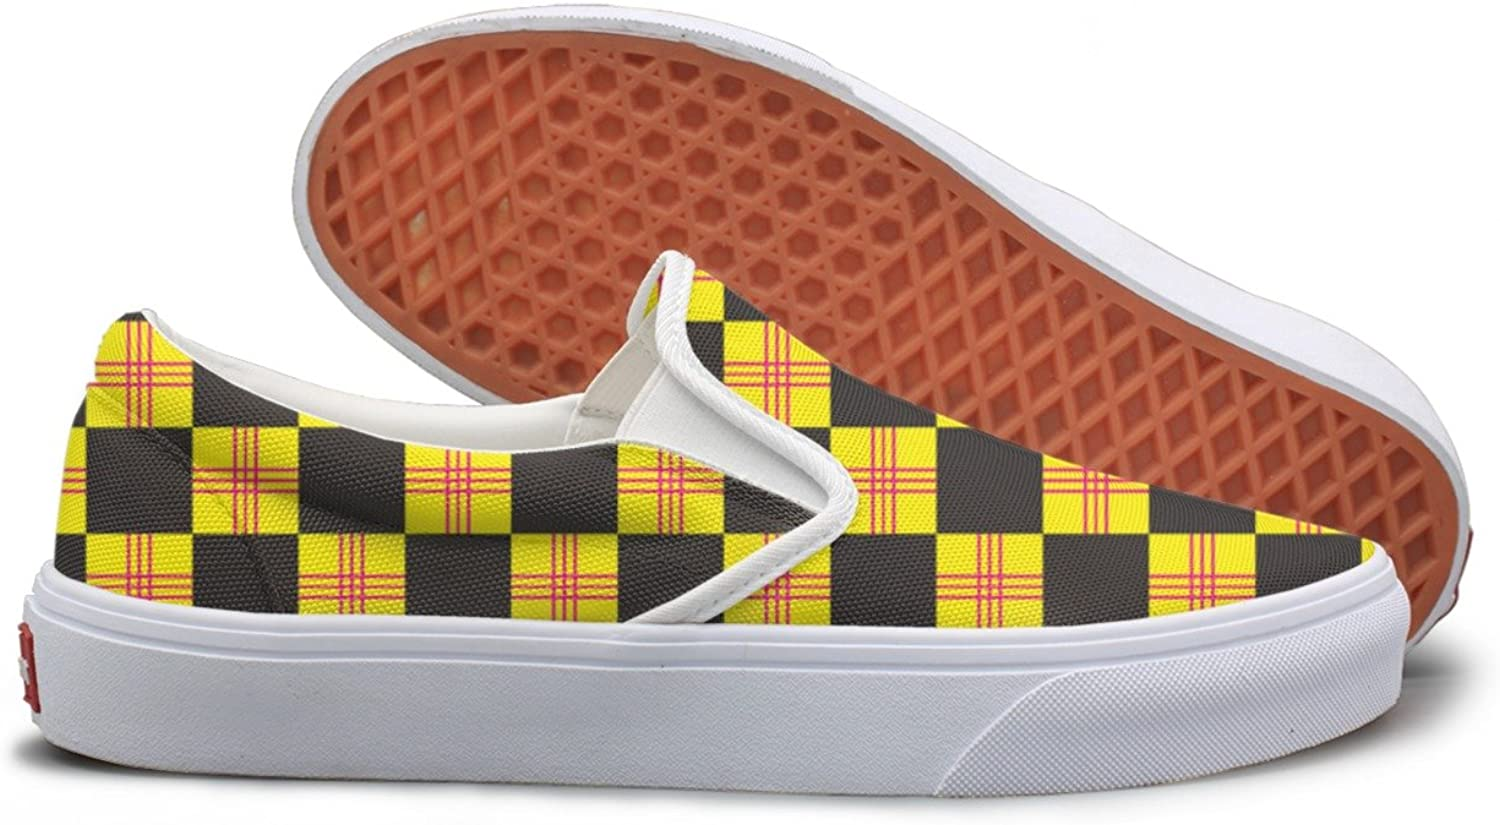 Lalige Checkerboard Yellow And Black Womens Printed Graphics Canvas Slip-on Walking shoes